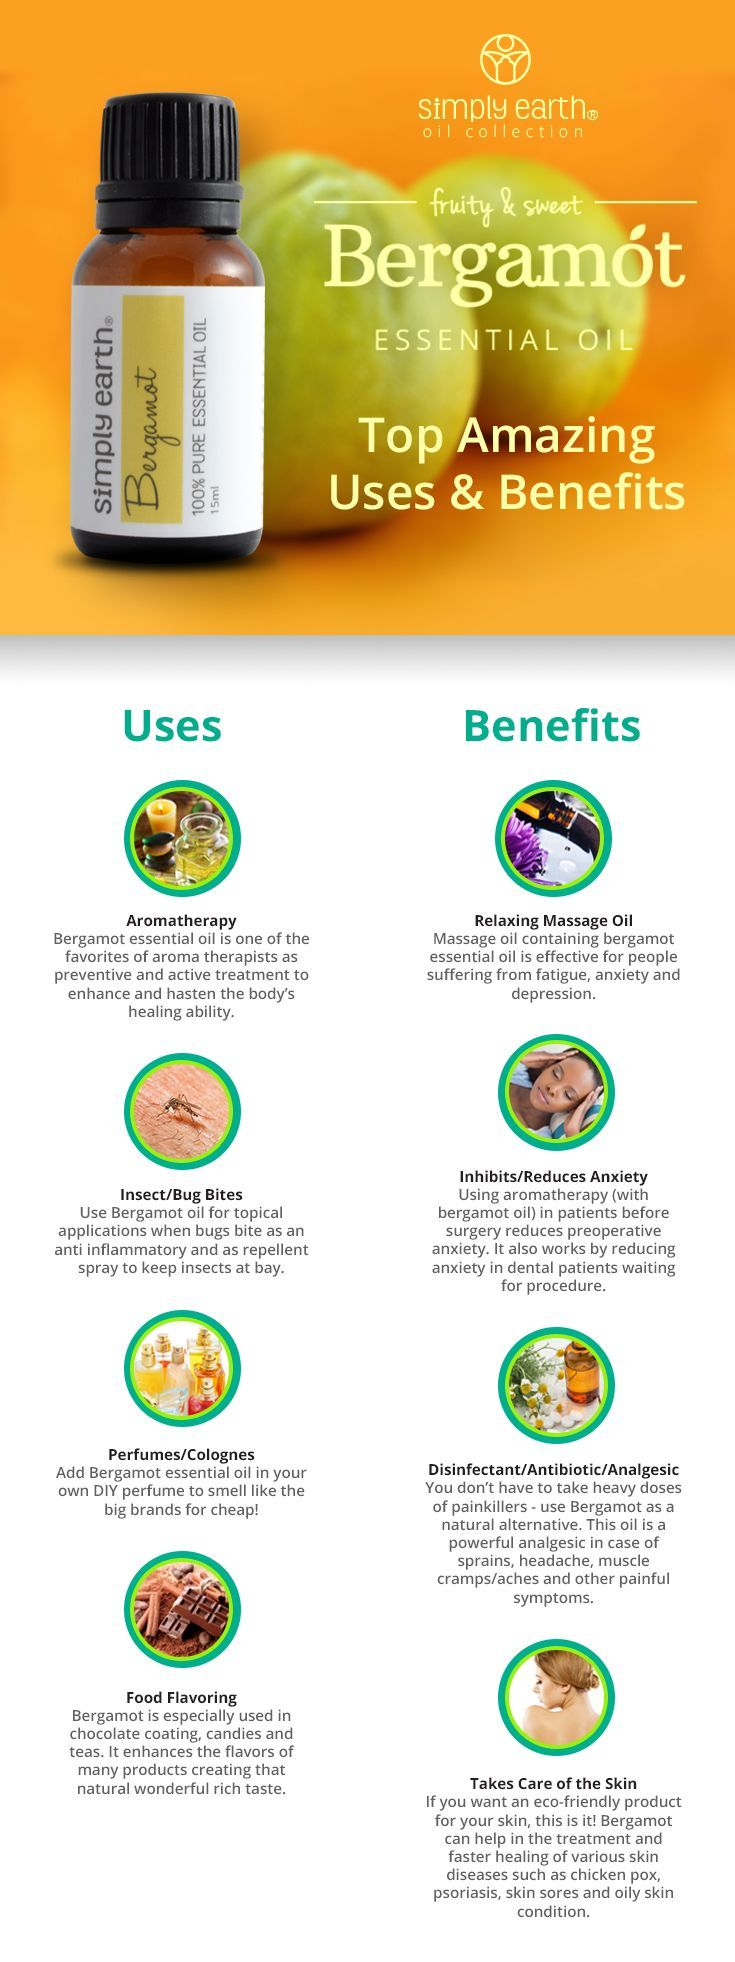 Bergamot Essential Oil (100% Pure & Eco-Friendly) Uses and Benefits | Simply Earth